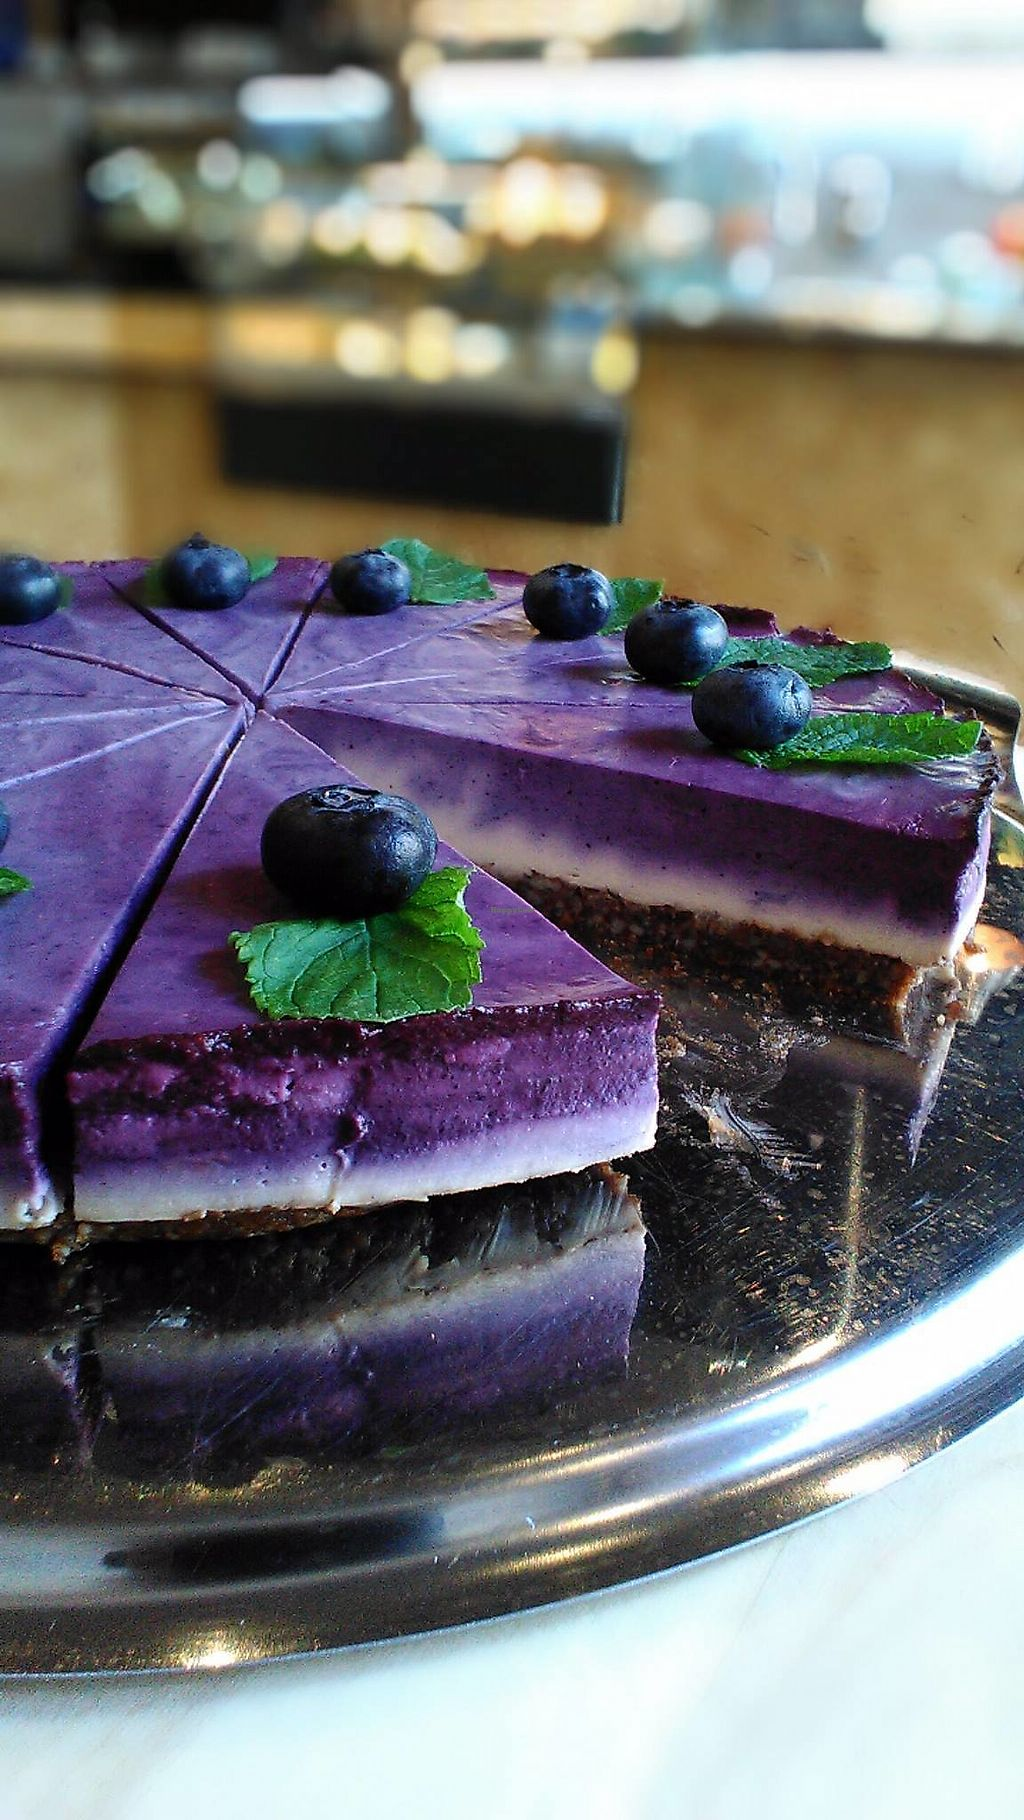 "Photo of Great Bistro & Cafe  by <a href=""/members/profile/o0Manny0o"">o0Manny0o</a> <br/>blueberry cheesecake <br/> September 1, 2017  - <a href='/contact/abuse/image/99983/299656'>Report</a>"